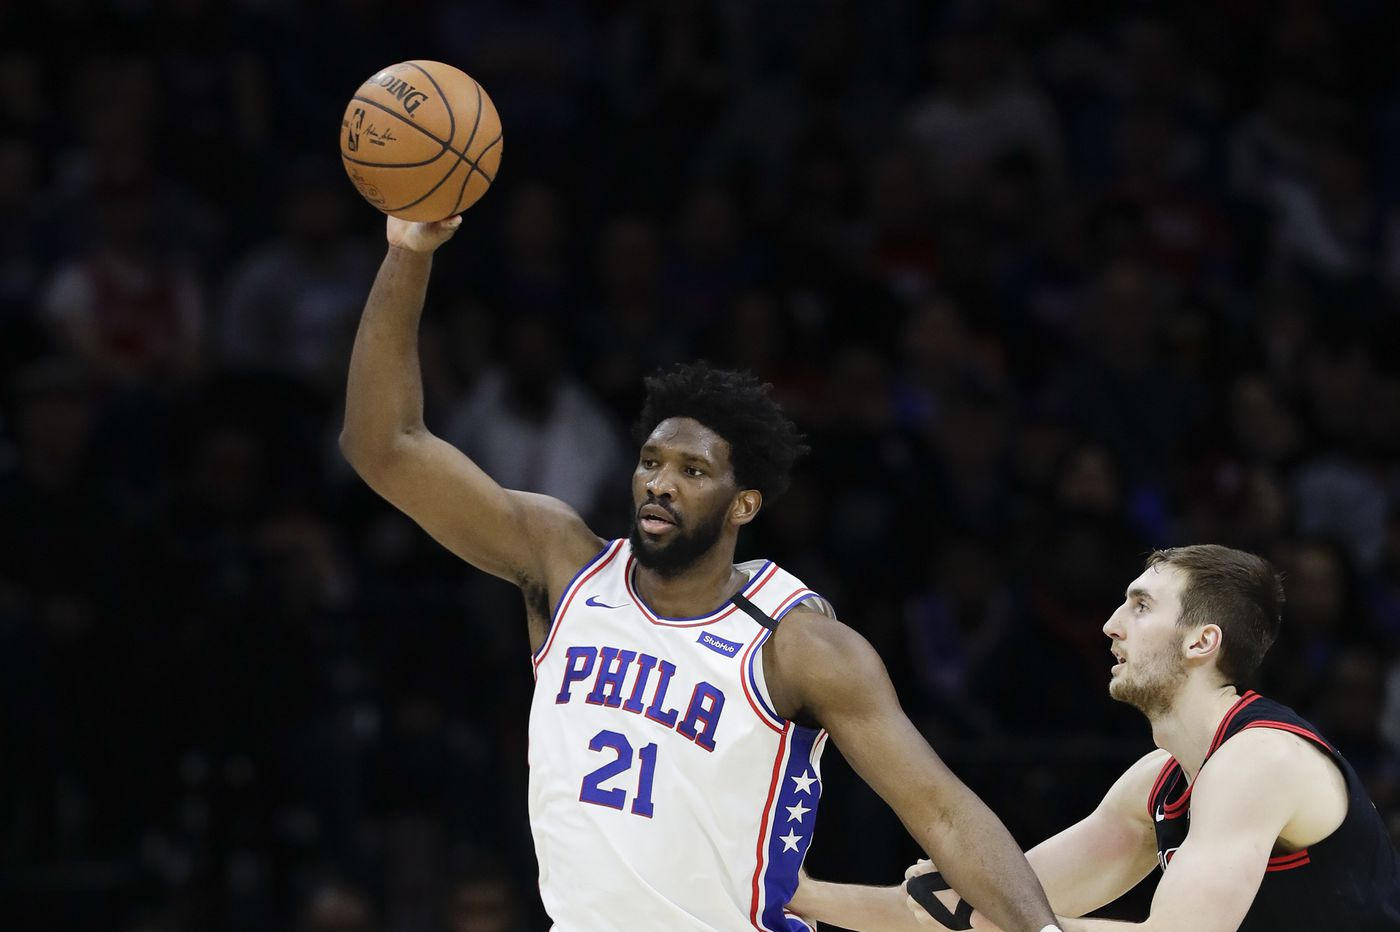 Sixers offseason outlook: Why now is not the time to trade Joel Embiid